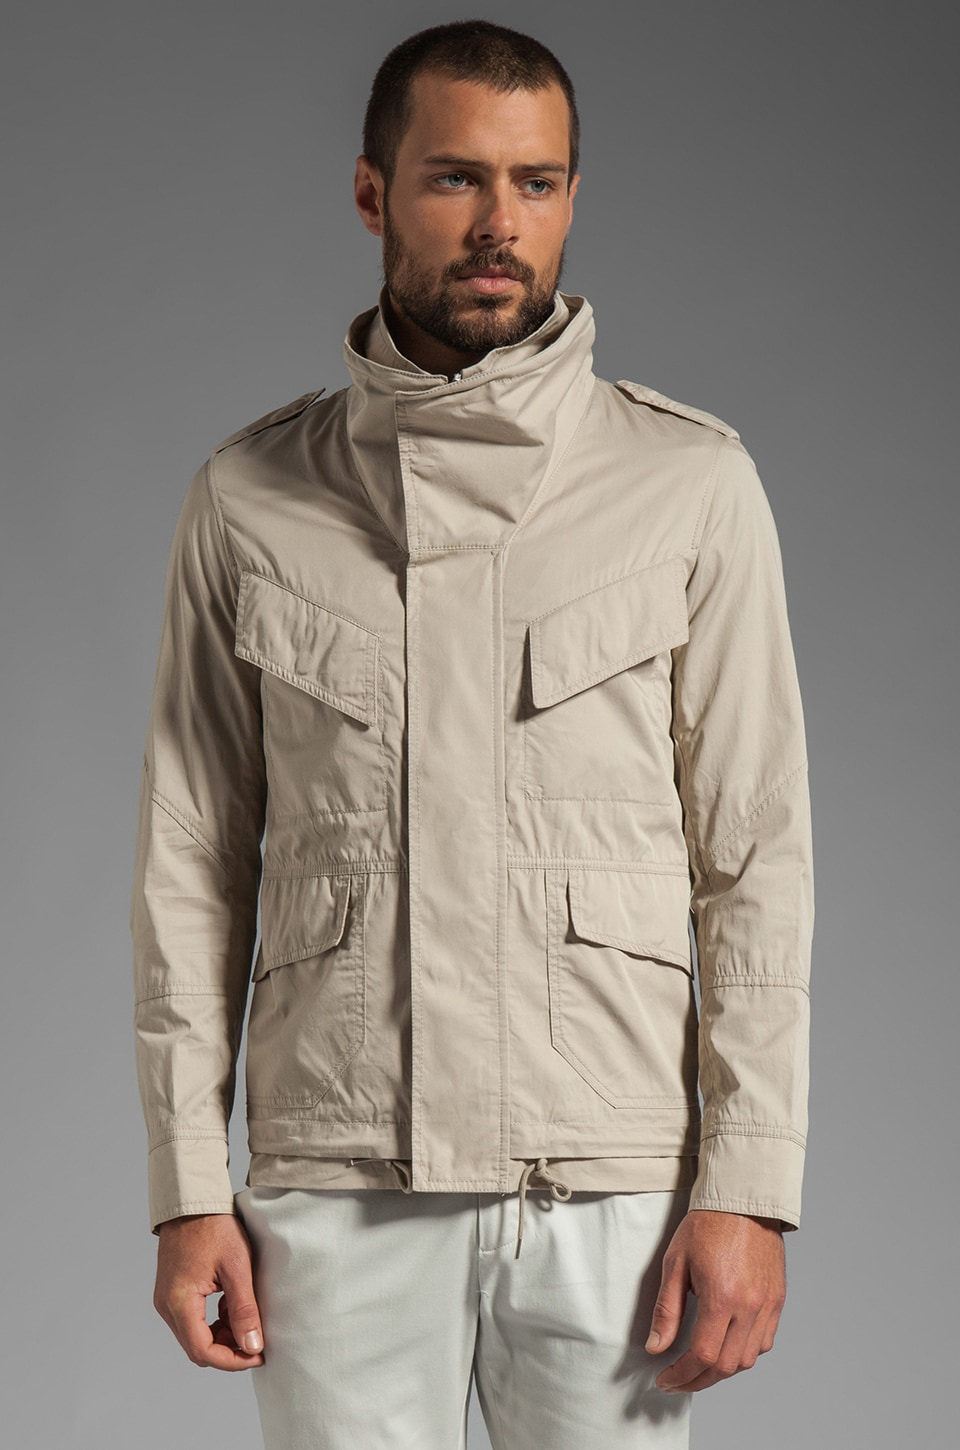 Kai-aakmann Pocketed Jacket in Beige